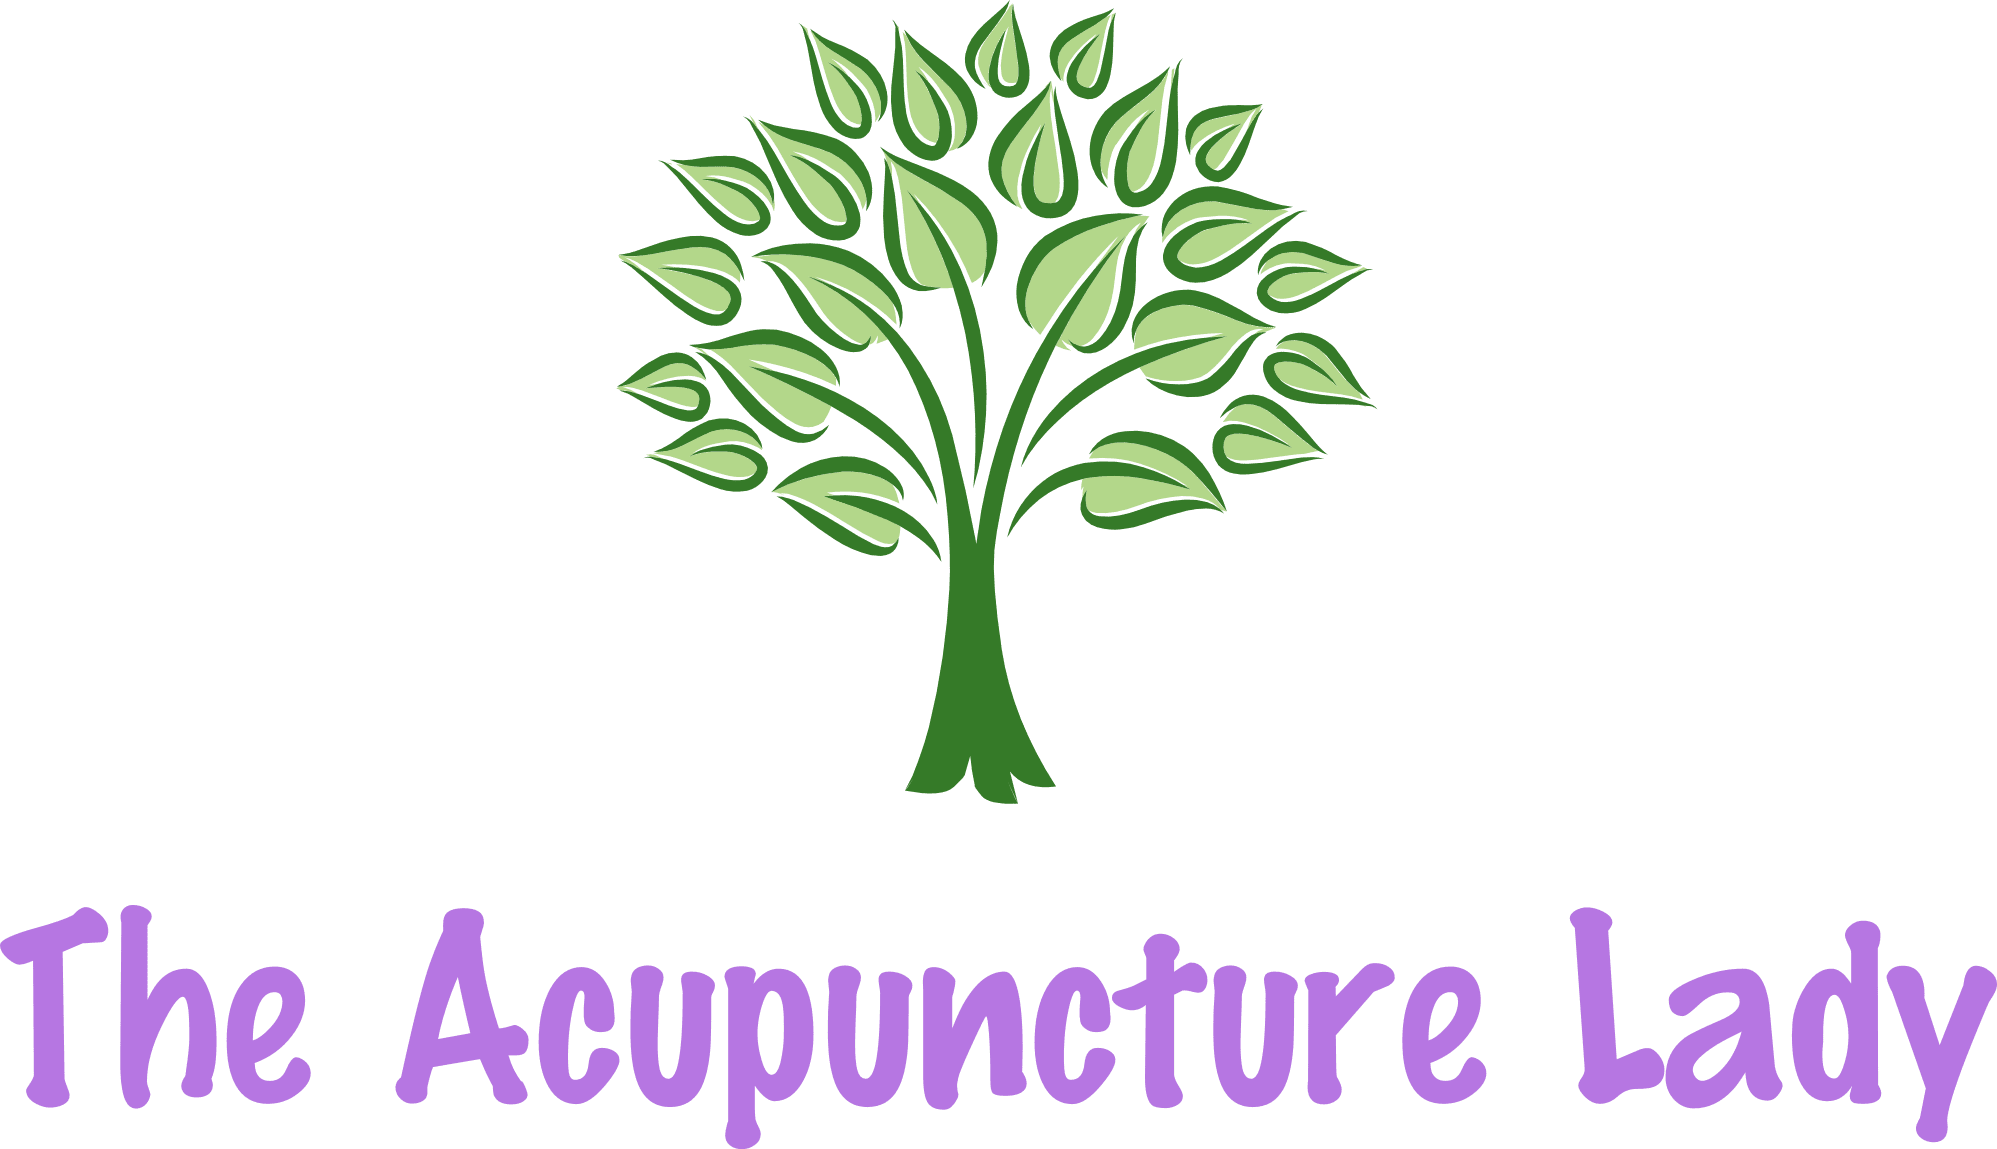 The Acupuncture Lady